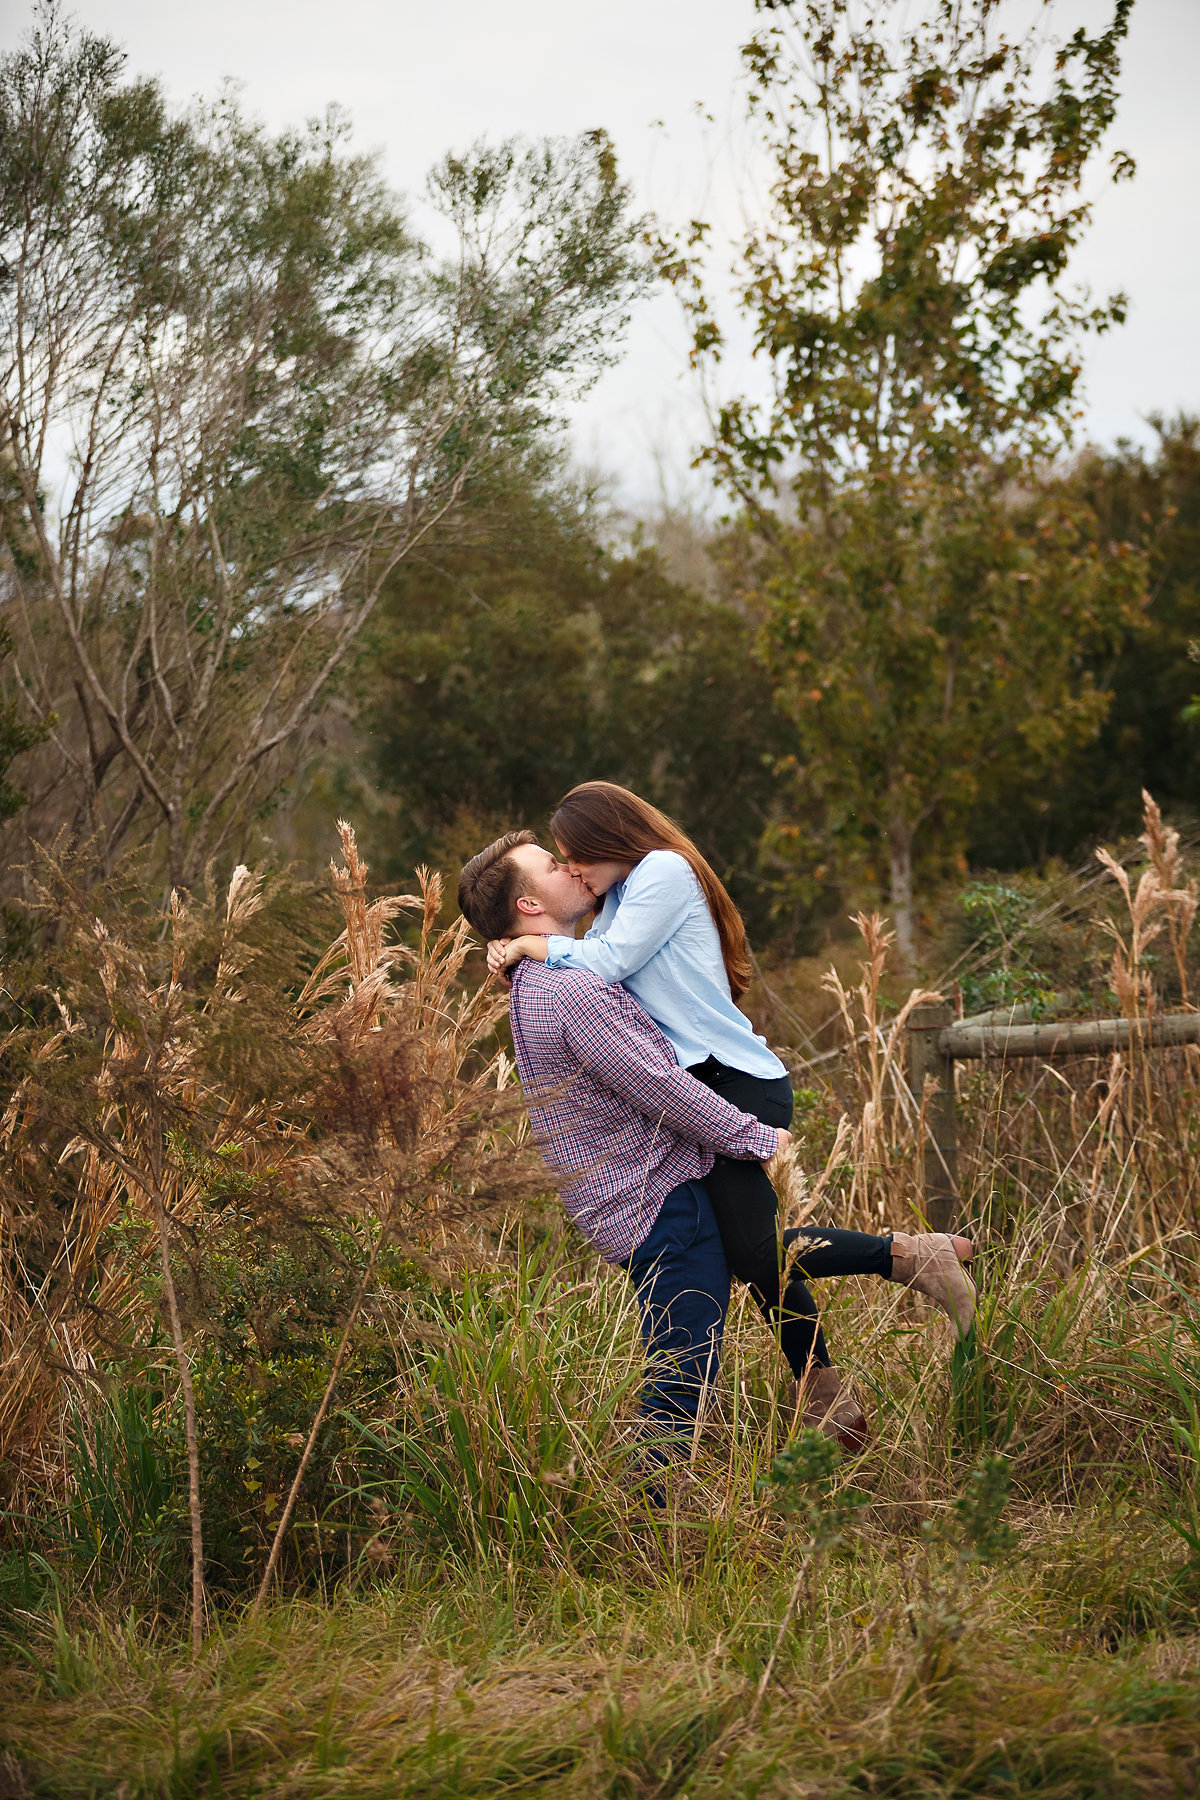 Fall-Engagement-Photoshoot-Jacksonville-DG9B0677 copy